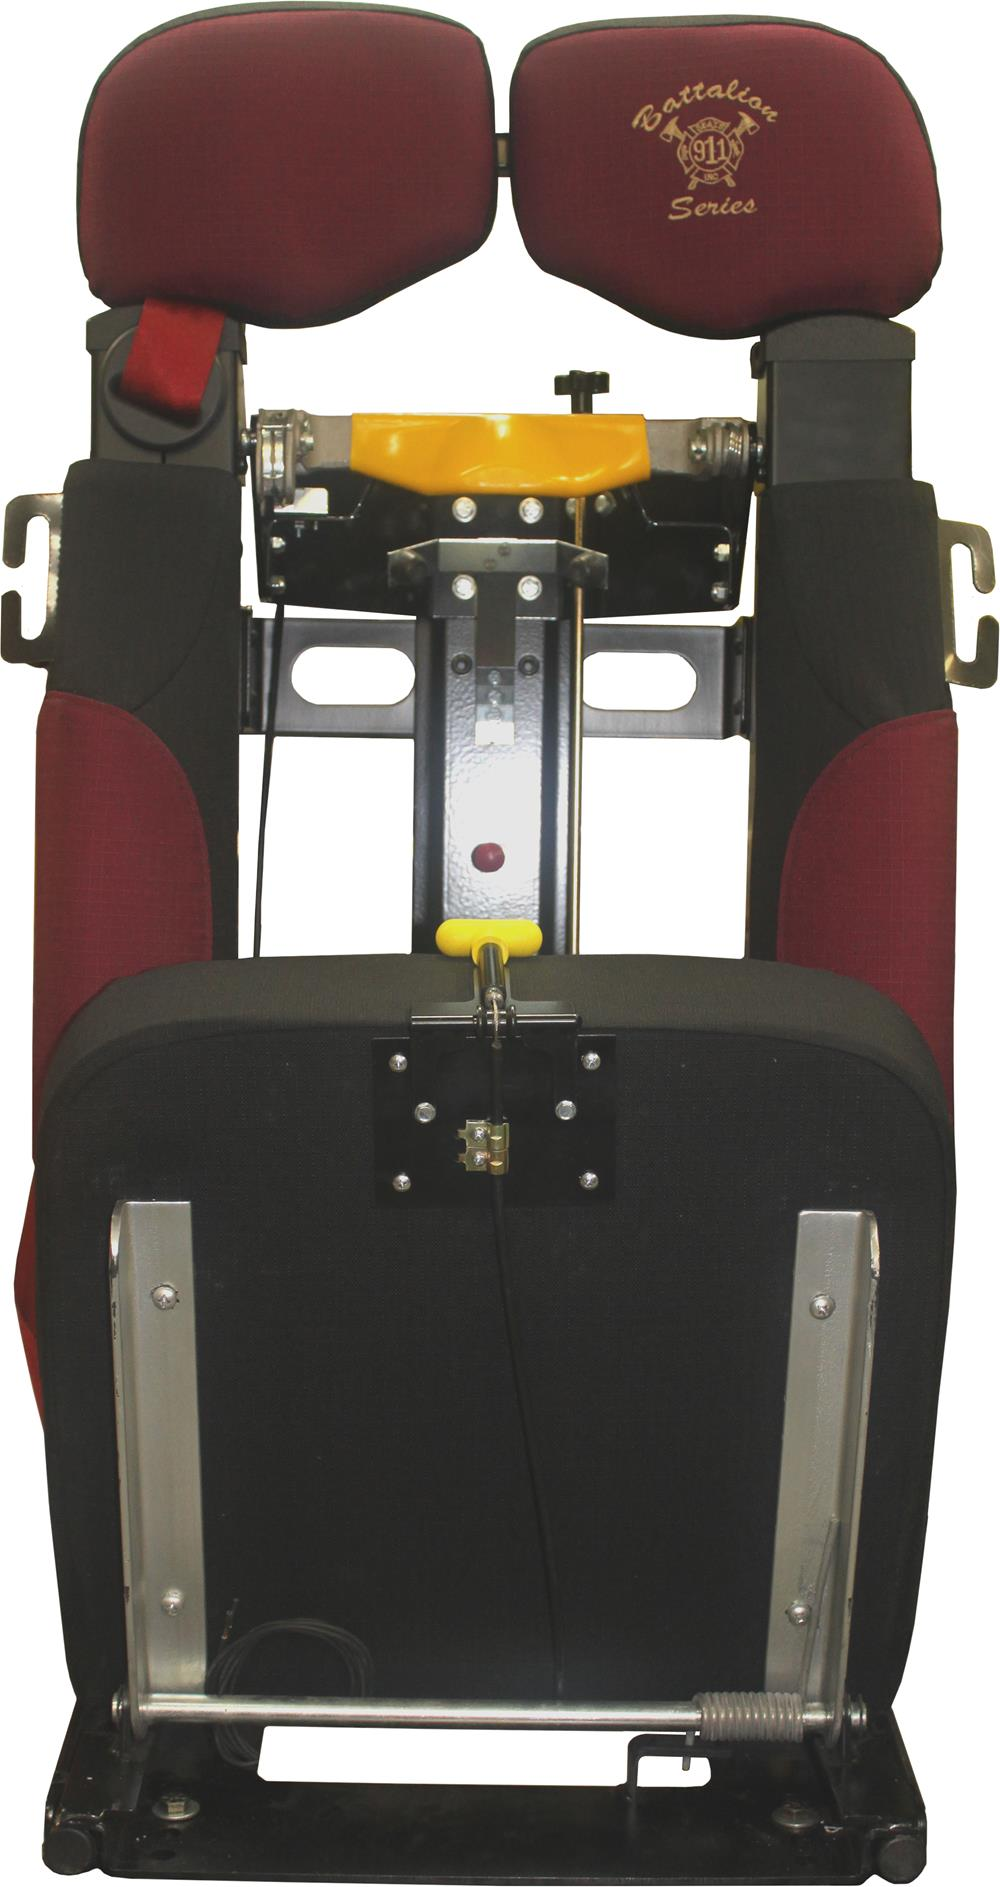 ROL-LOC Center Pull Release – Seats, Inc. Flip-up Seats